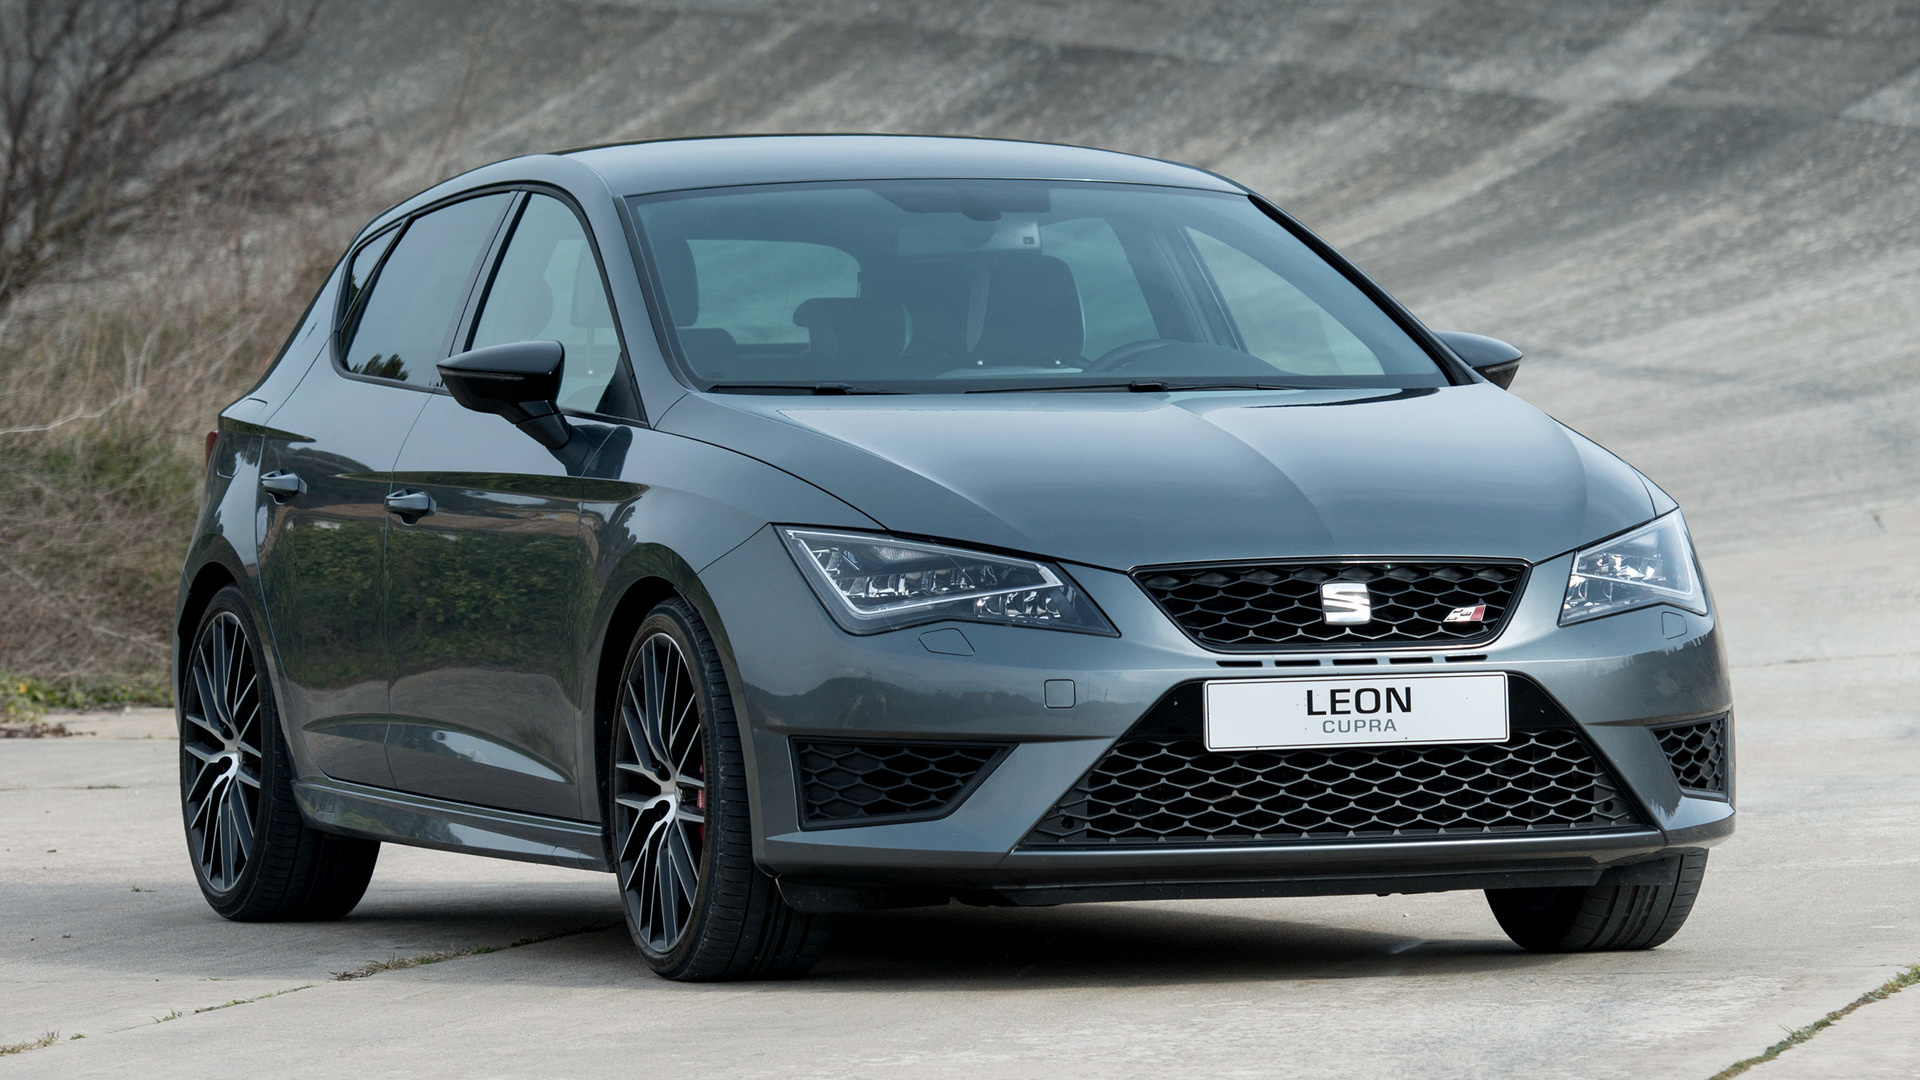 2015 seat leon cupra 290 wallpapers and hd images car. Black Bedroom Furniture Sets. Home Design Ideas